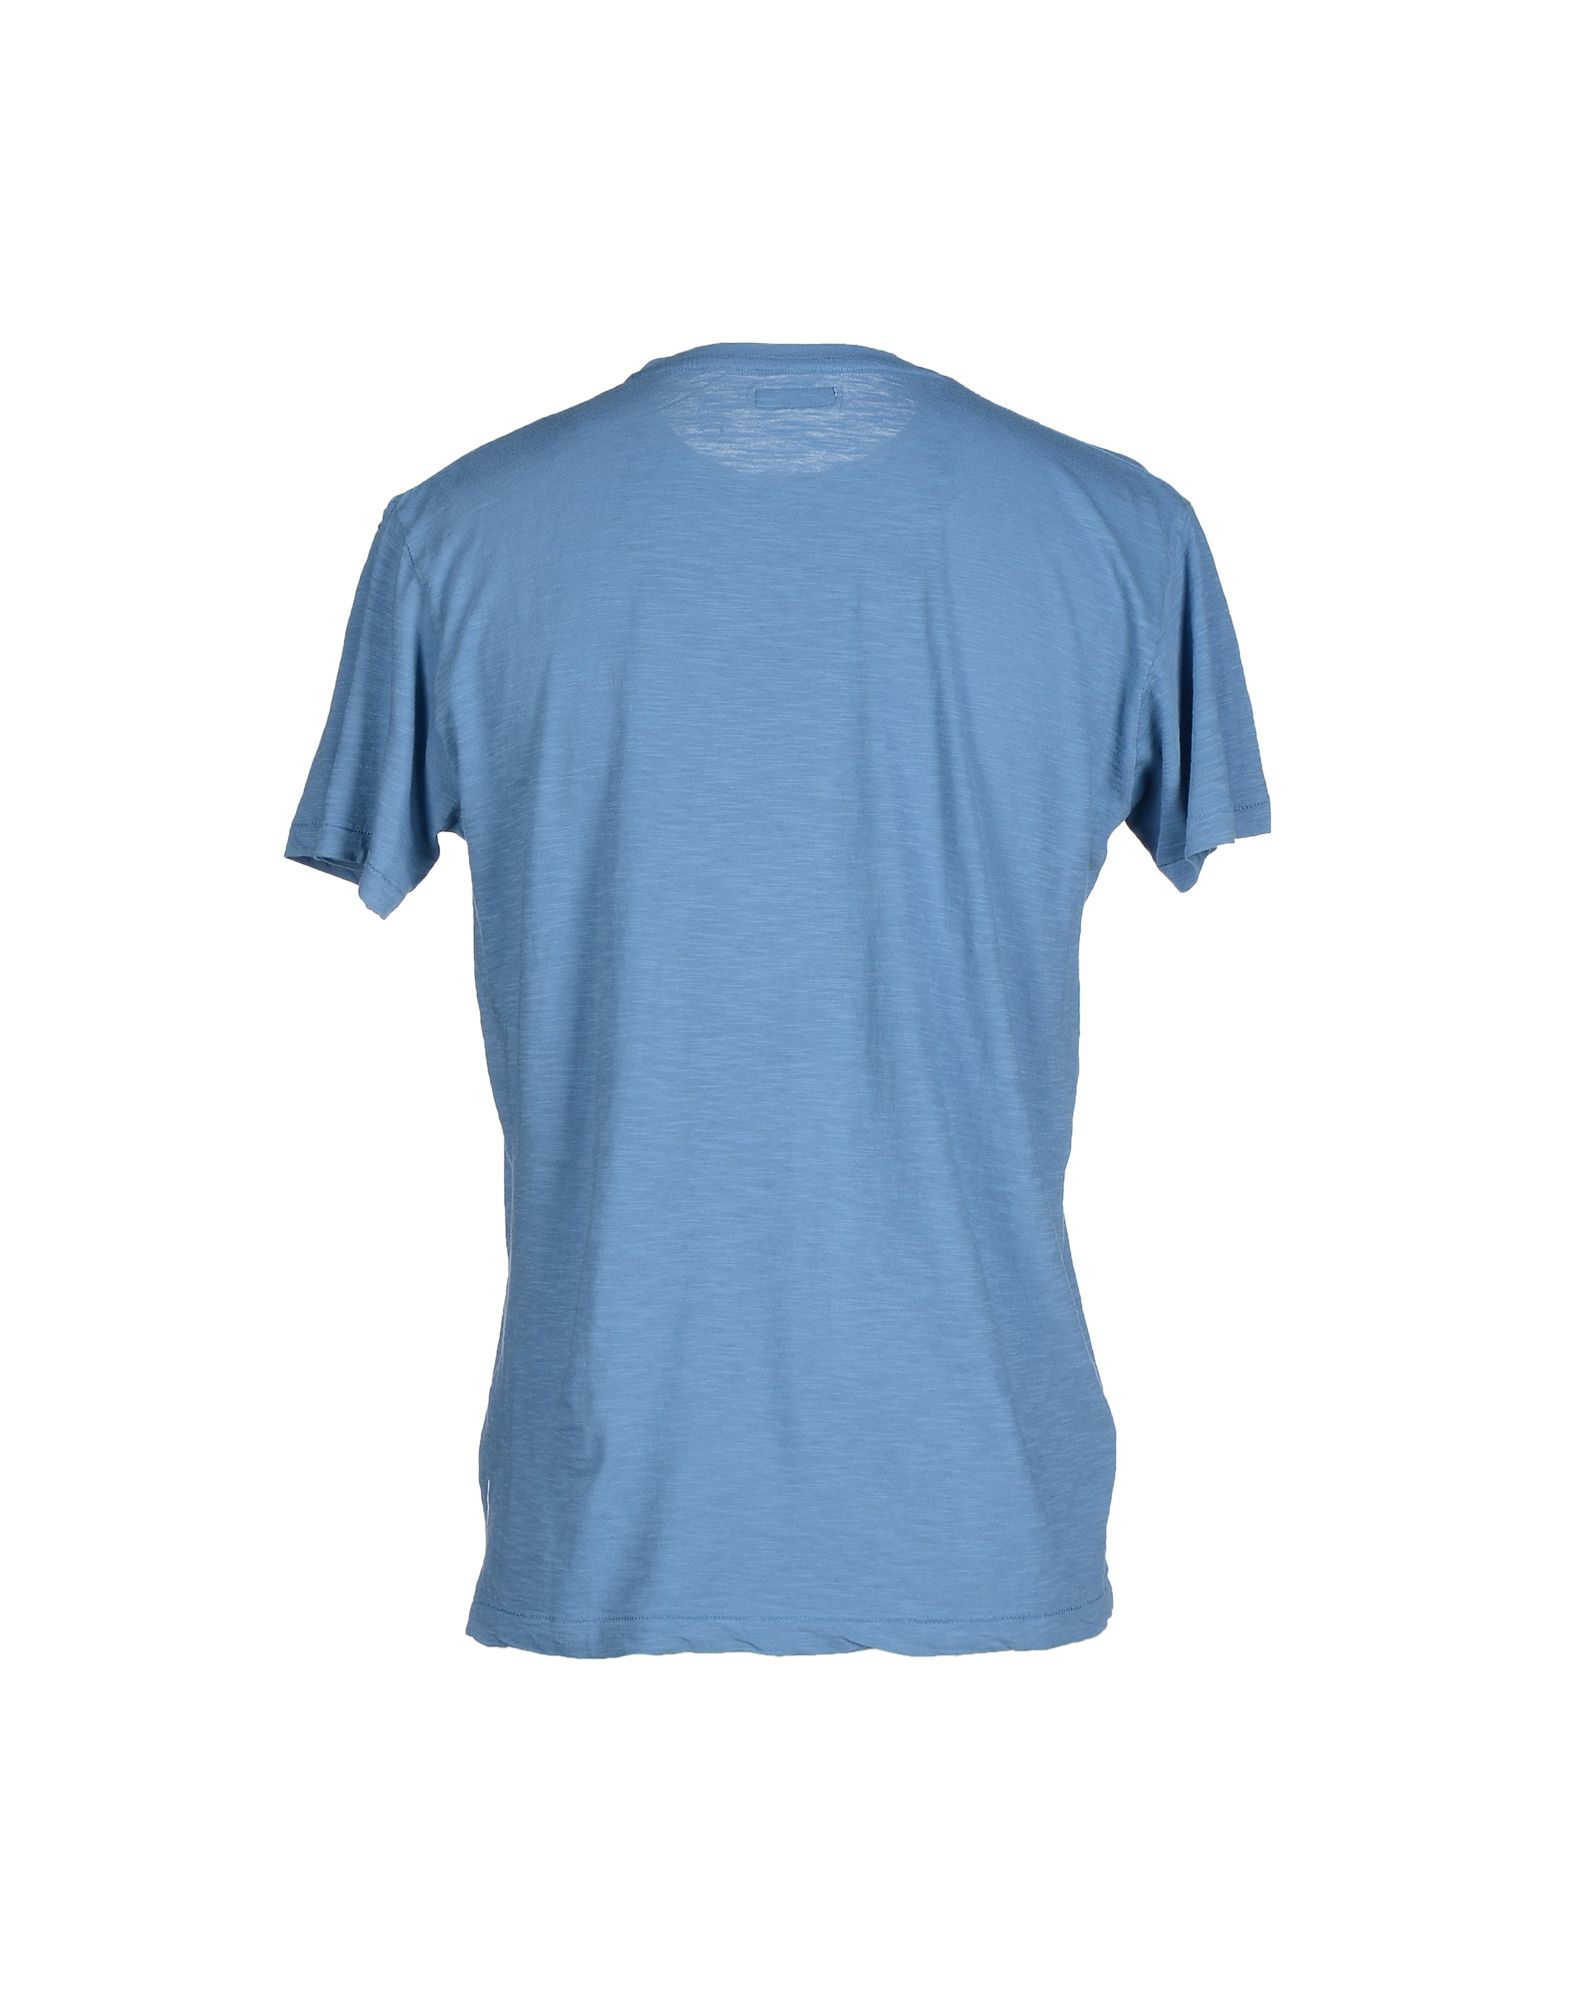 Bomboogie t shirt in blue for men pastel blue lyst for Pastel colored men s t shirts